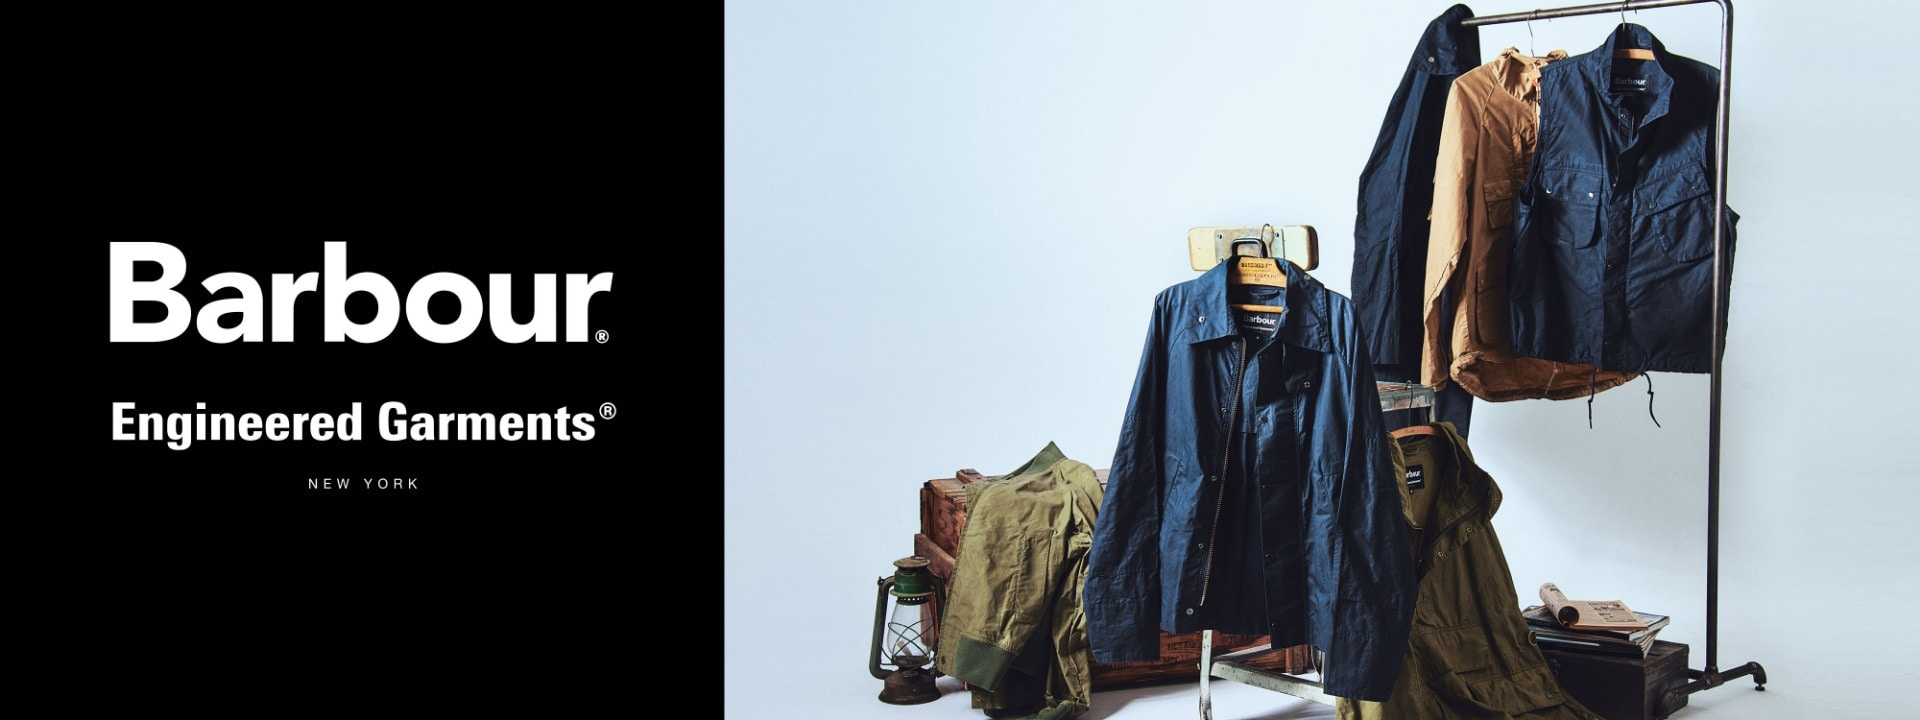 Barbour×Engineered Garments 19 spring-summer